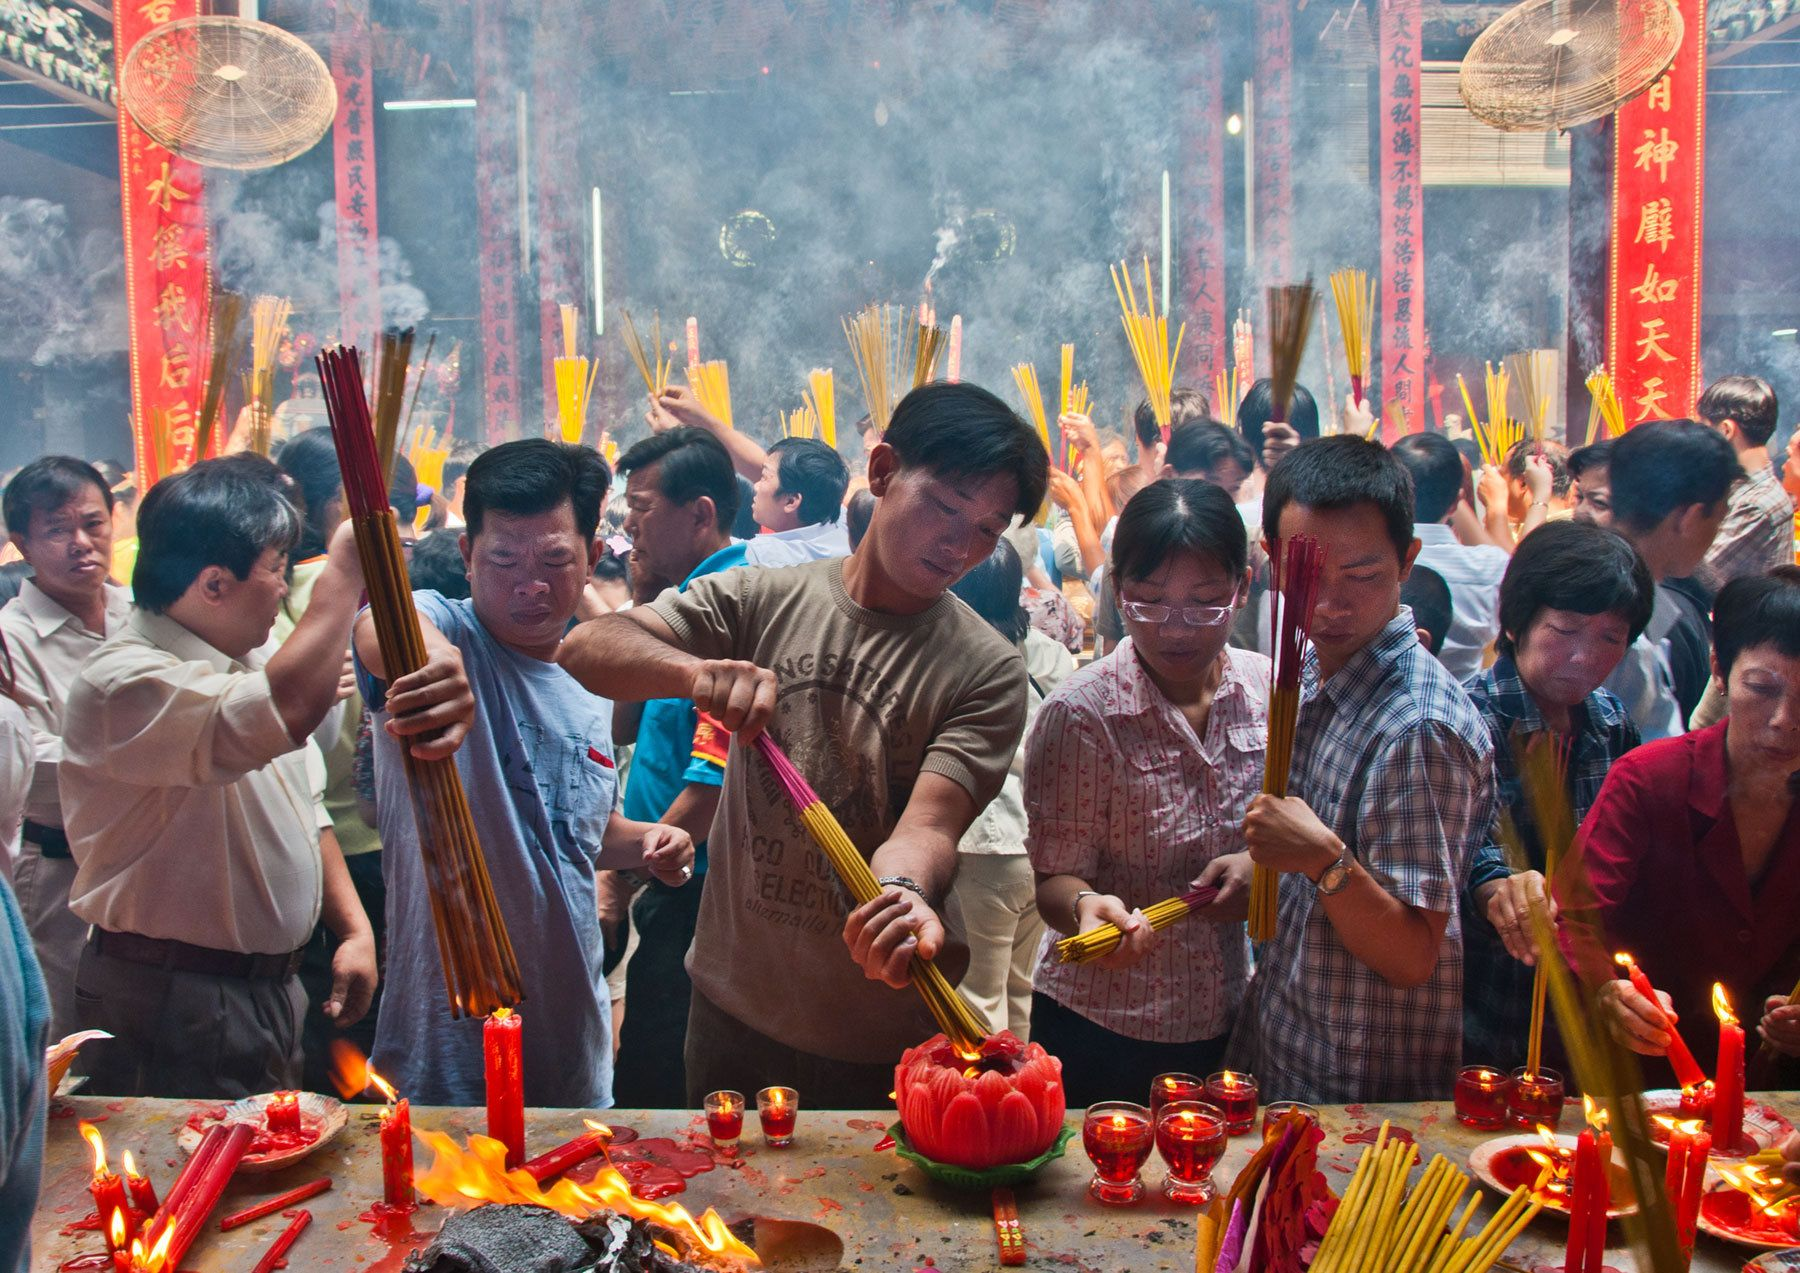 Incense Burning during Tet Festival, Buddhist Temple, Ho Chi Minh City, Vietnam